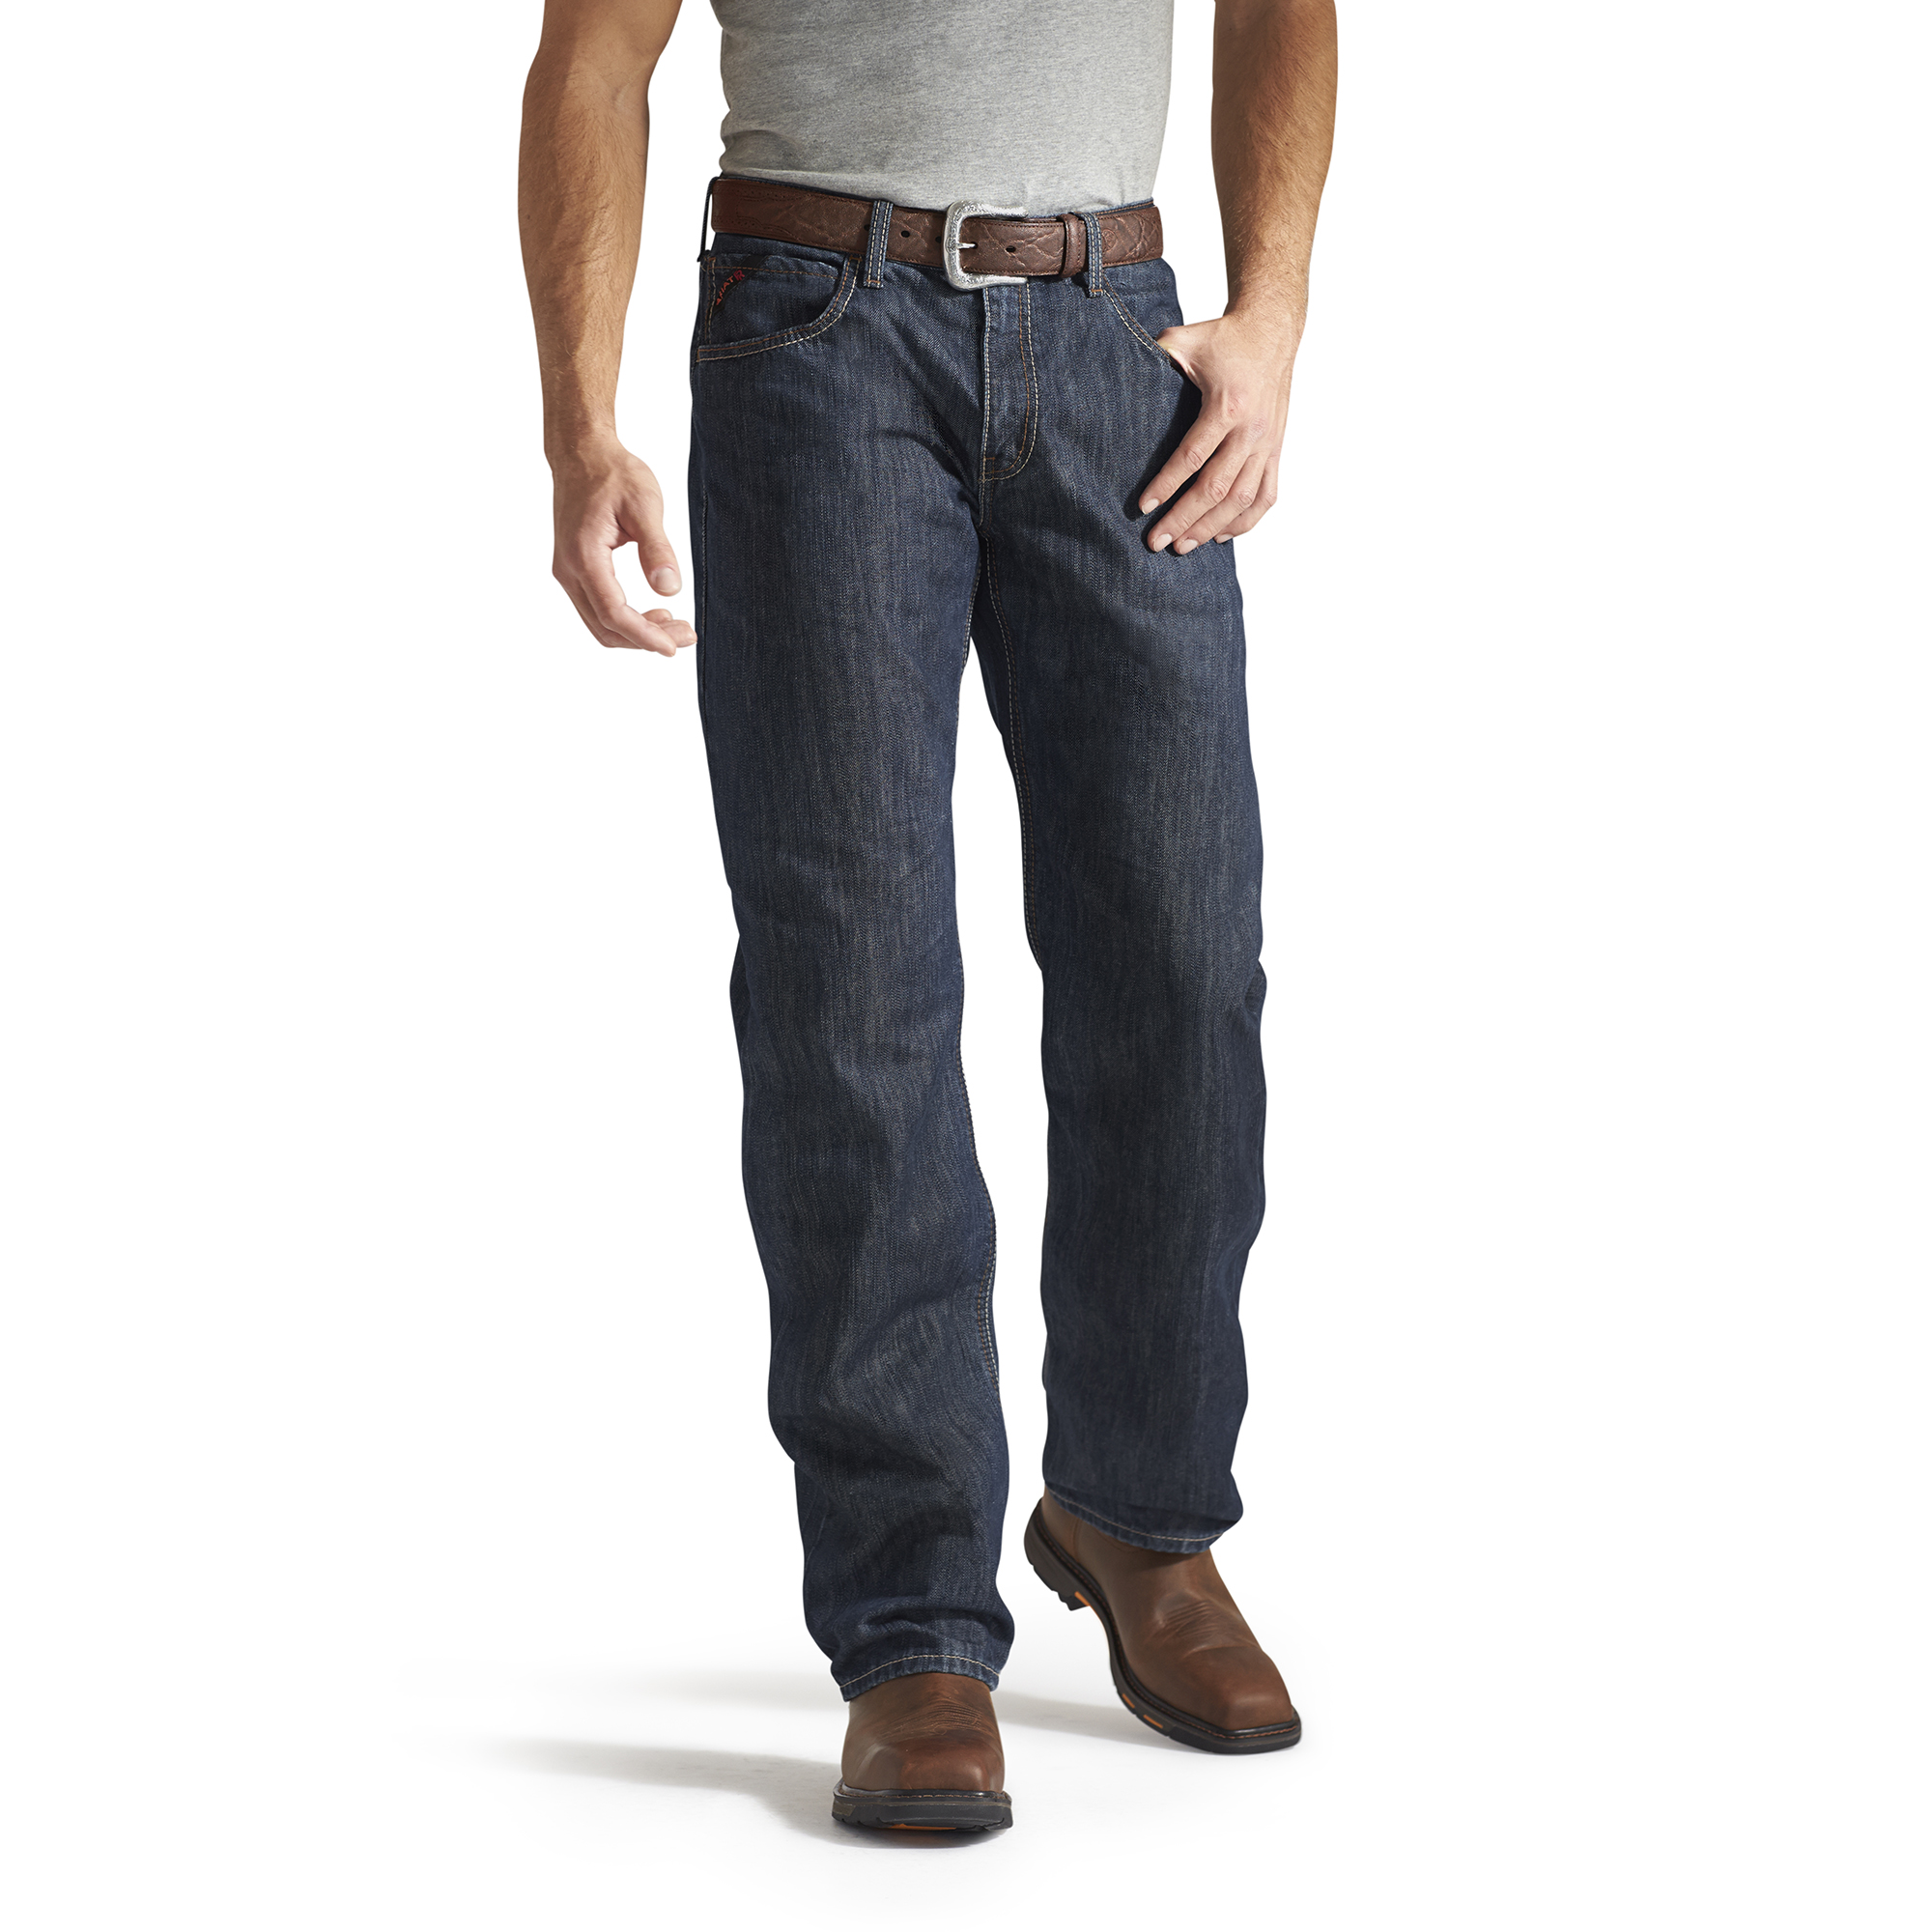 Corpus Rub Ariat Fr M3 Loose Fit Blue Jeans | Flame Resistant